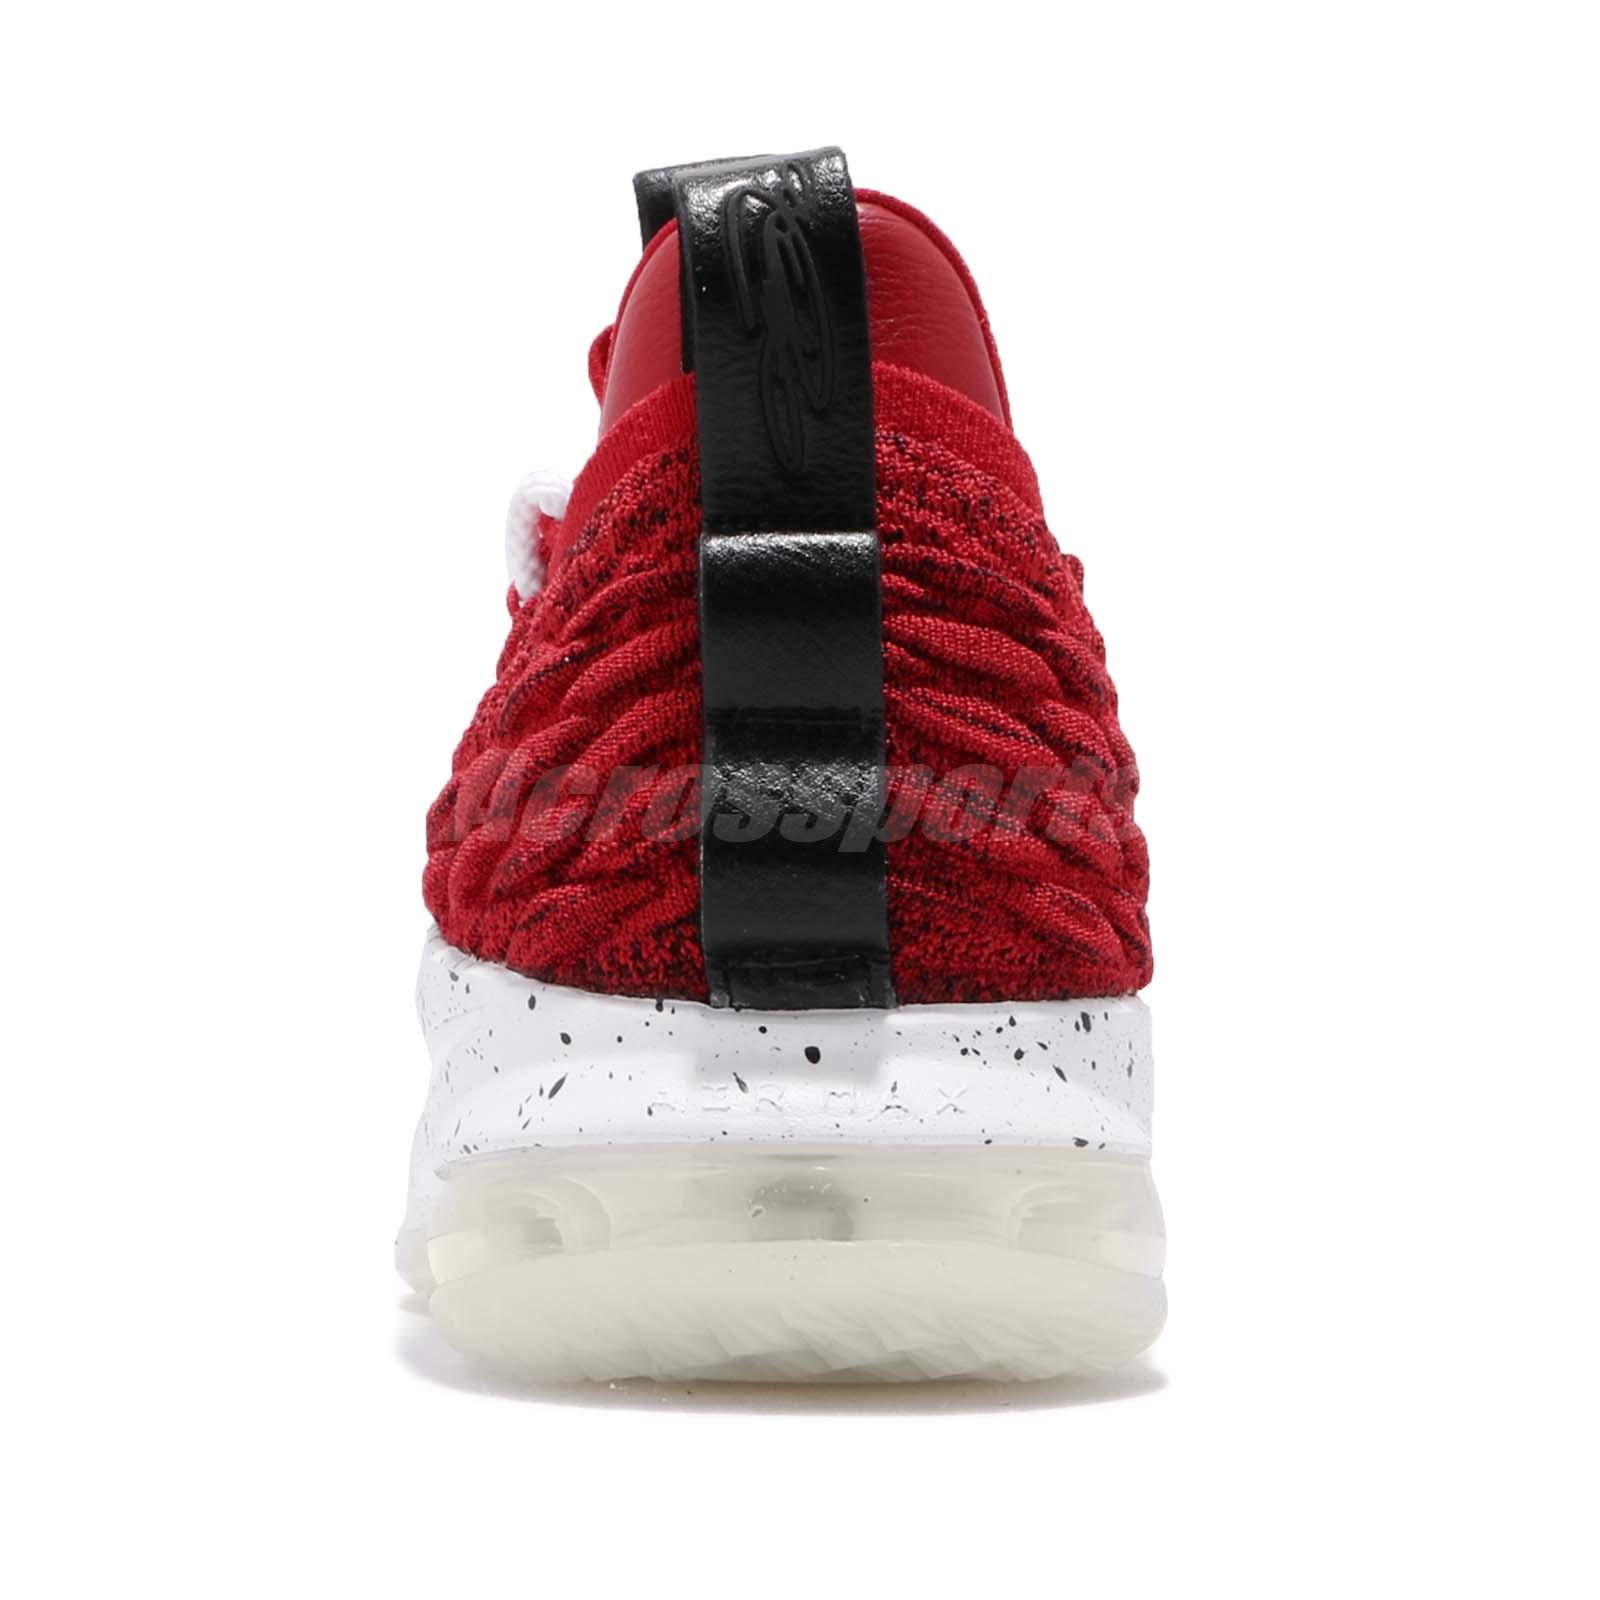 Athletic Shoes Nike Lebron Xv Low Ep 15 University Red James Air Basketball Shoes Ao1756-600